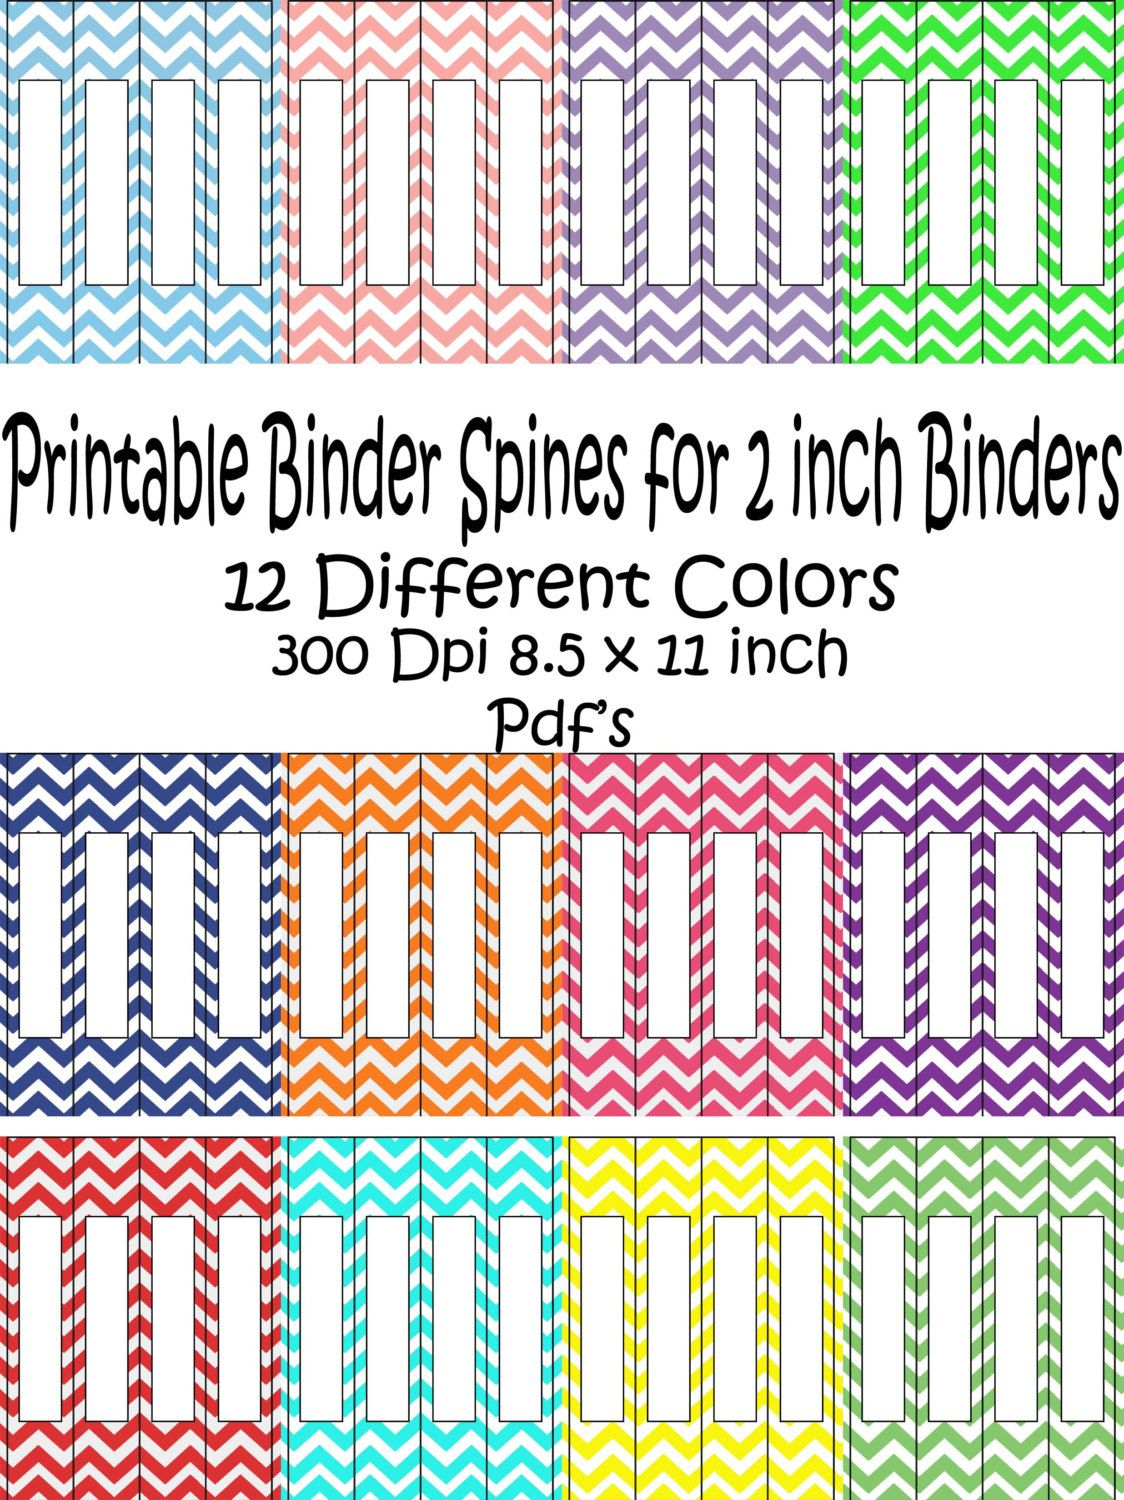 picture regarding Printable Binder Spine Inserts known as Printable Binder Backbone Pack Dimension 2 Inch-12 alternative Shades